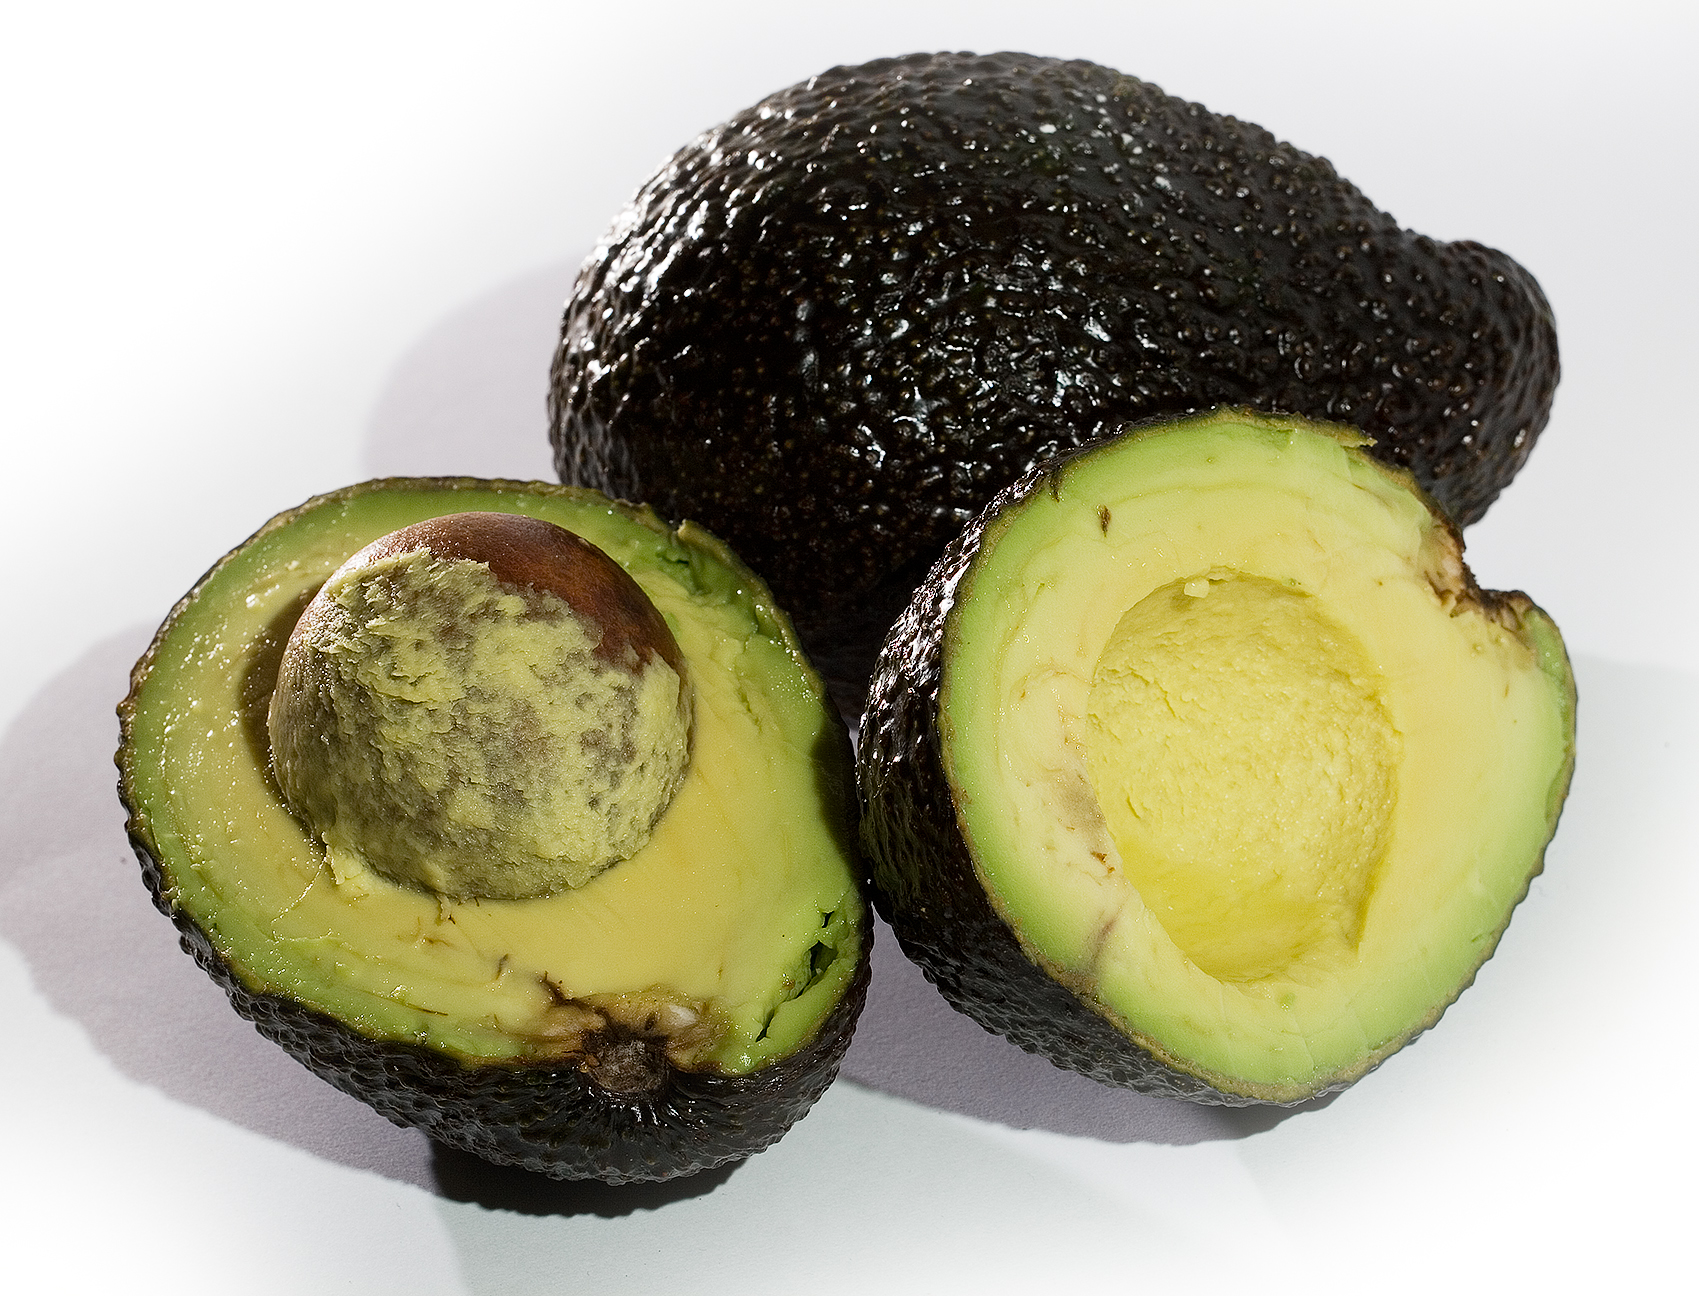 File:Avocado Whole and Crossection.jpg - Wikipedia